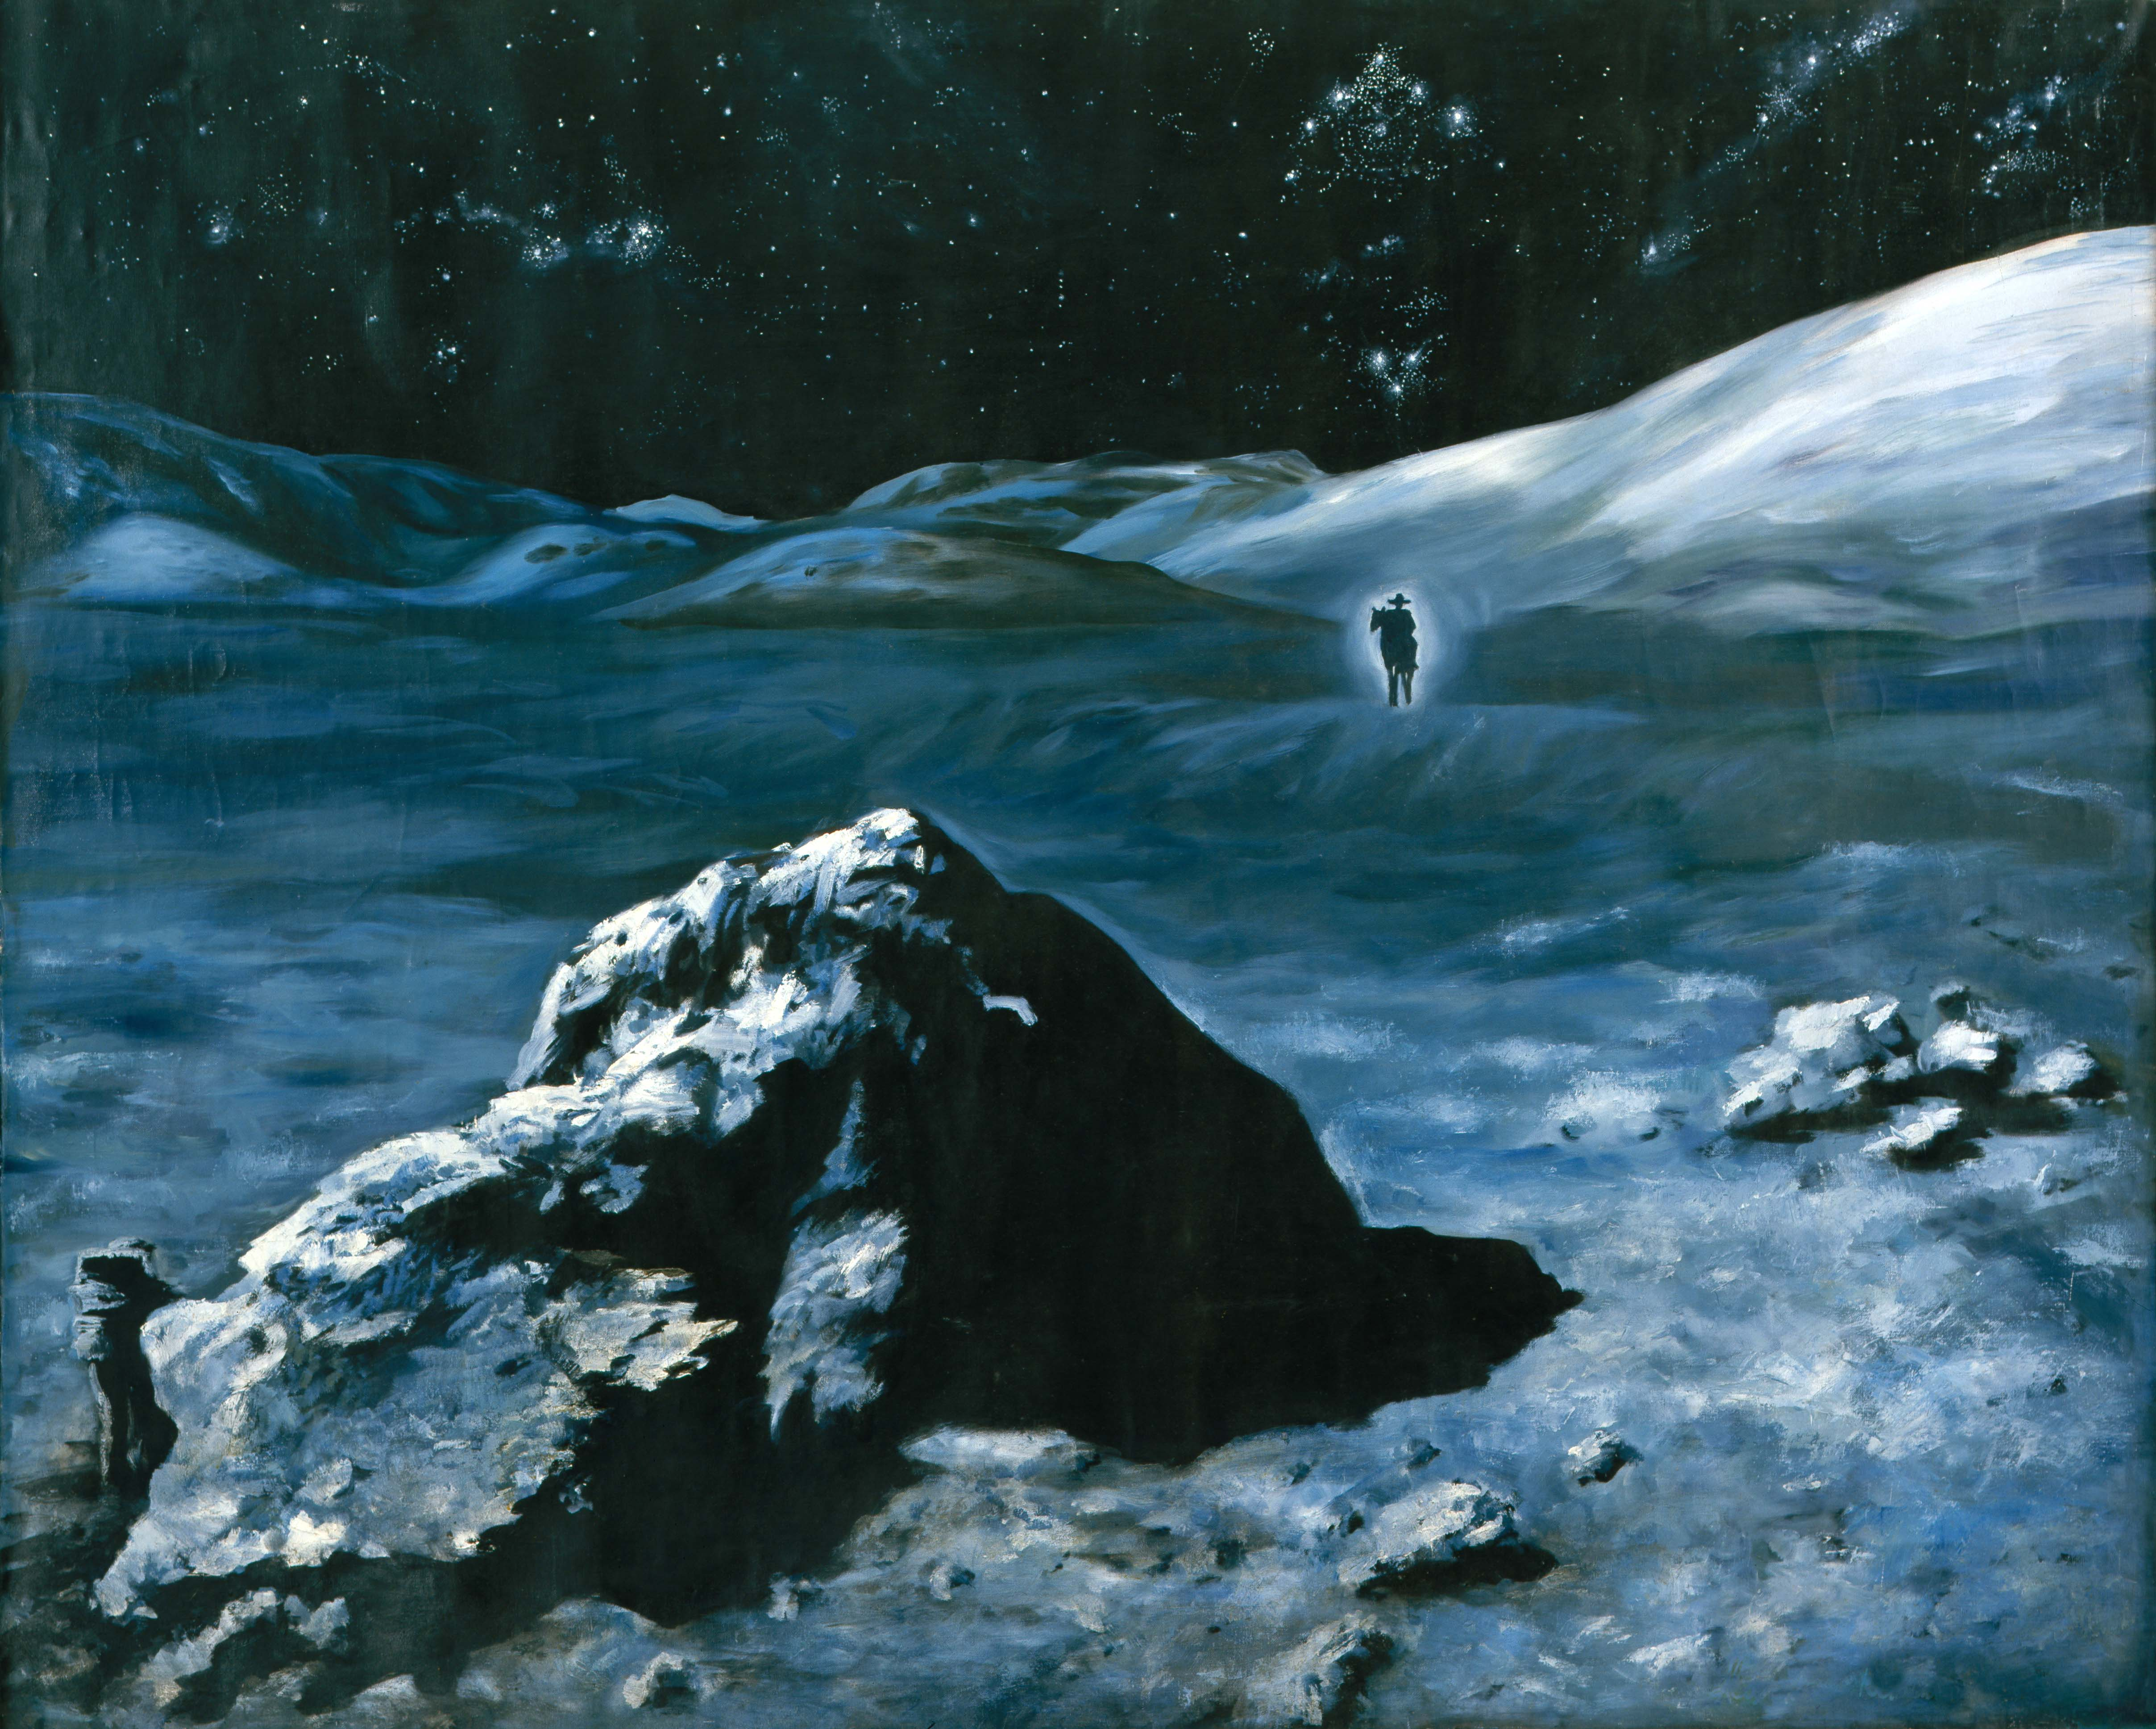 MOON COWBOY, 1991, oil on canvas, 250 x 200 cm. Private collection